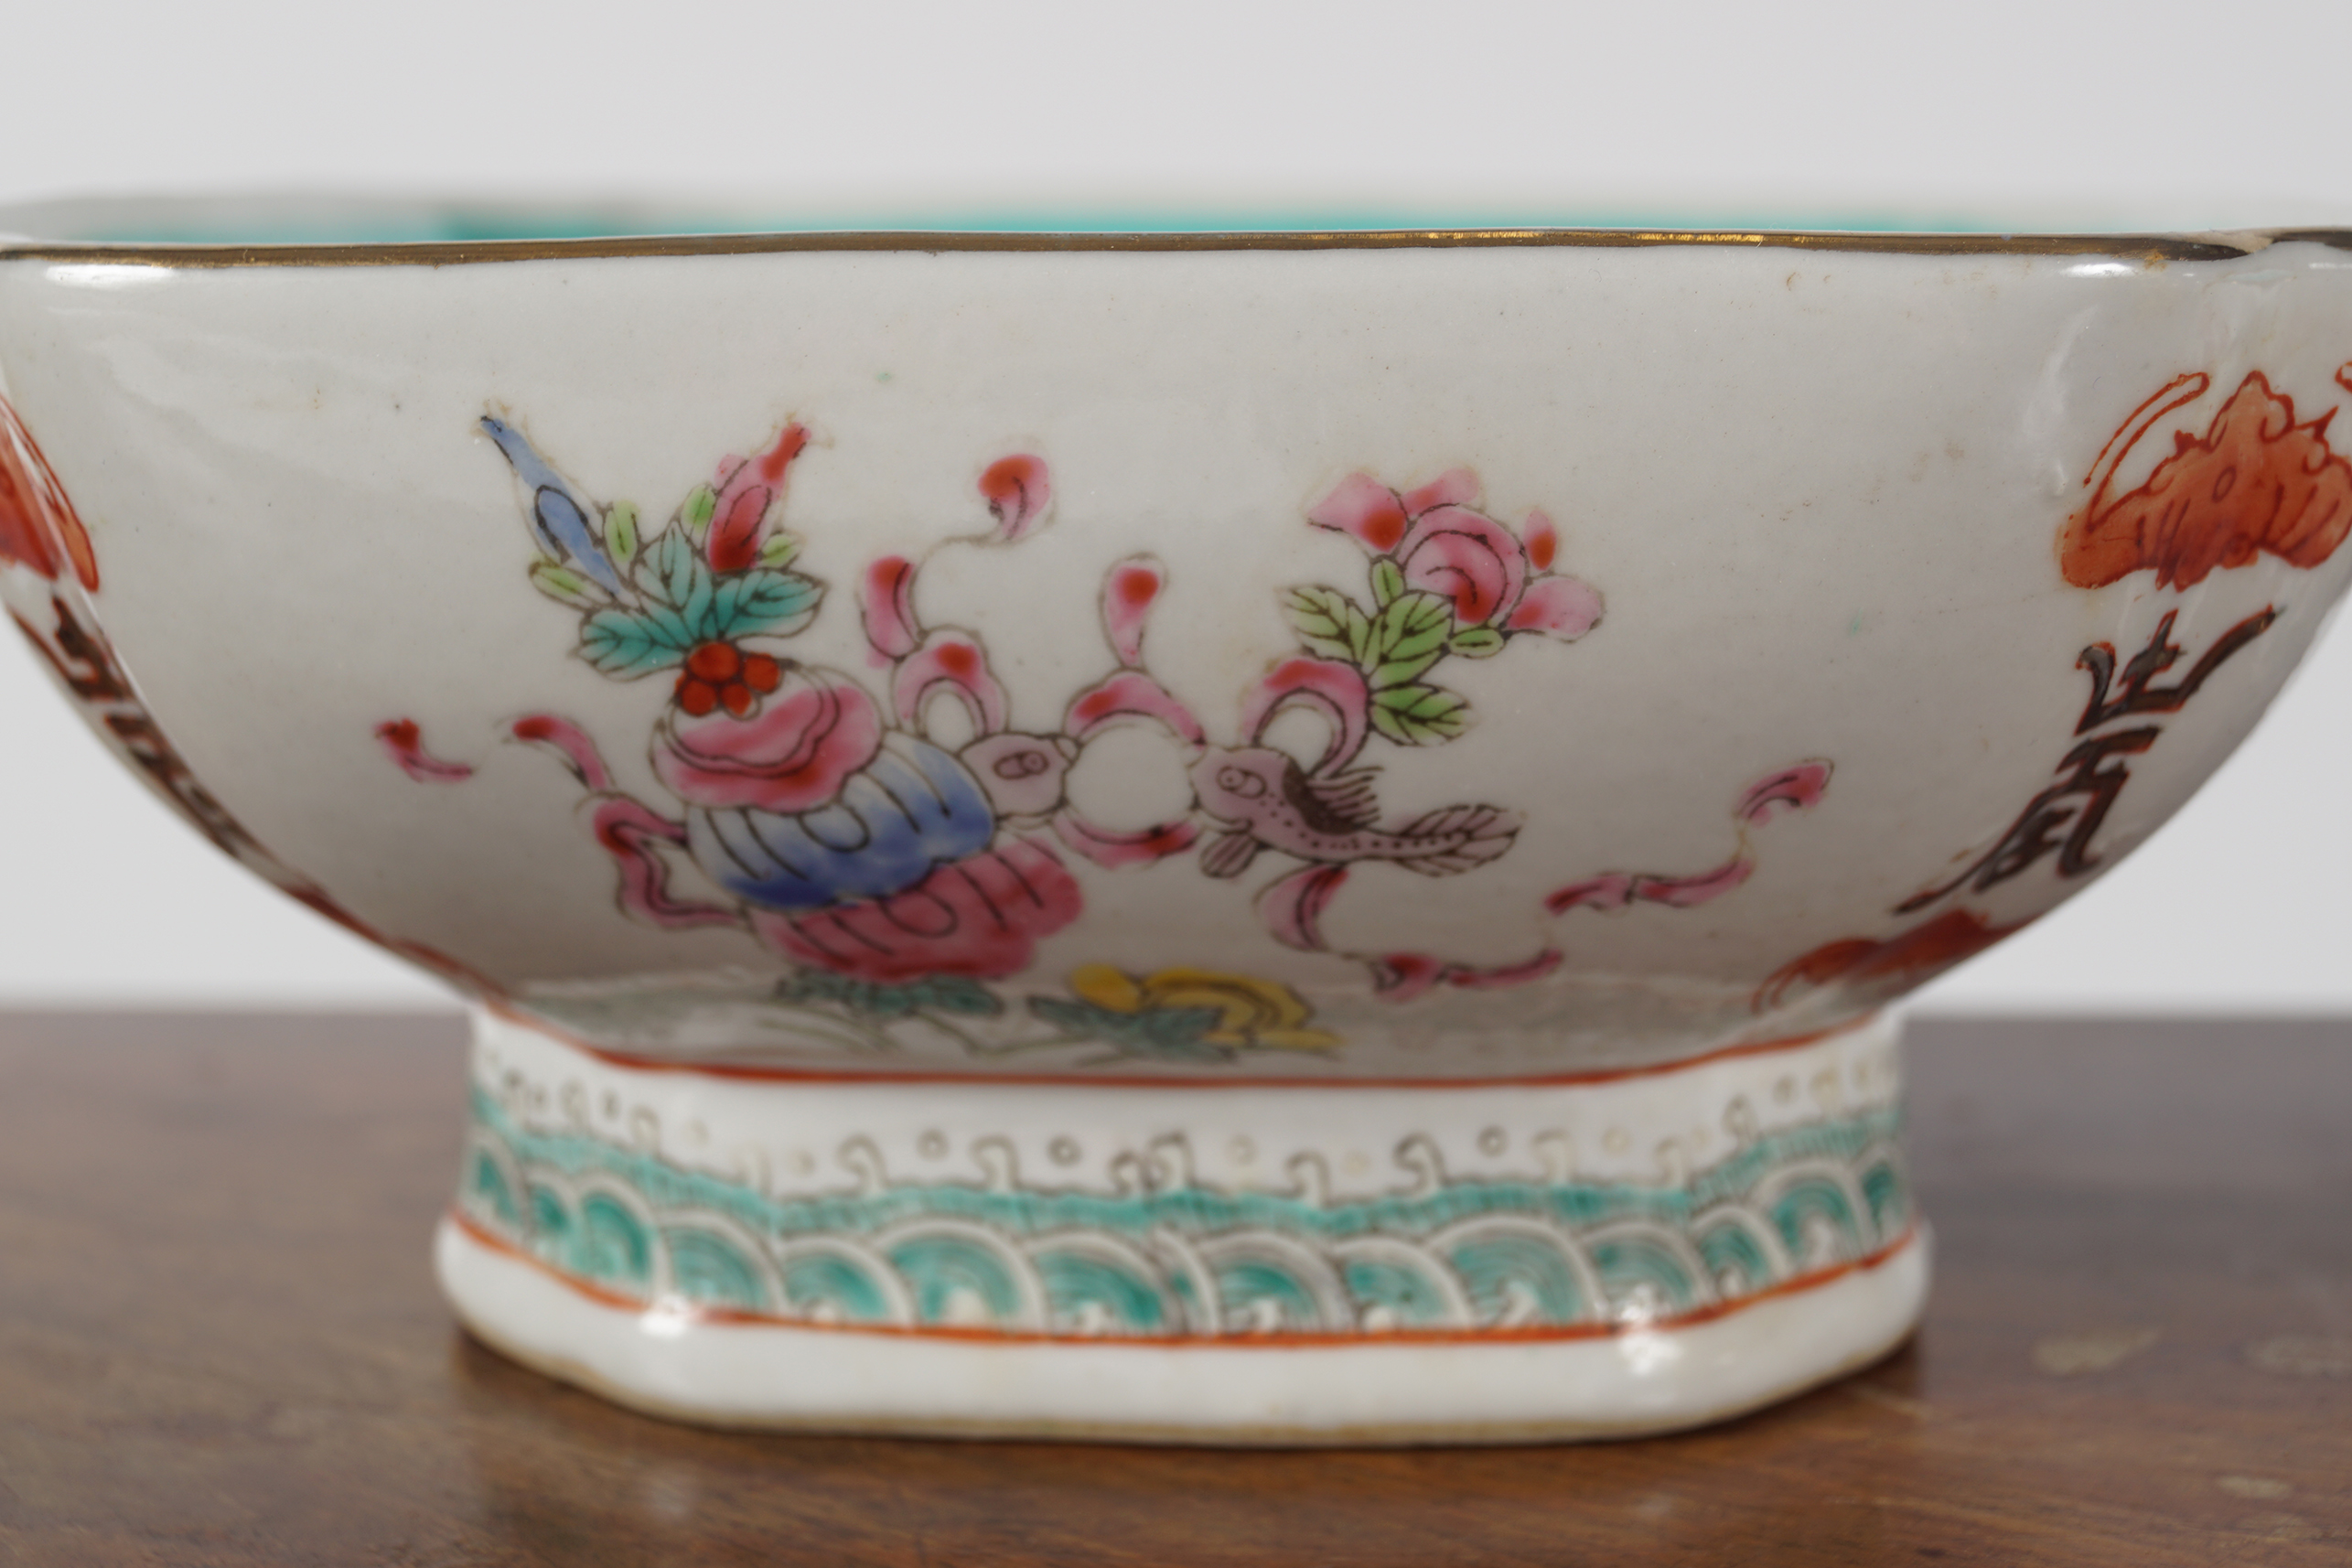 PAIR OF CHINESE POLYCHROME BOWLS - Image 2 of 3